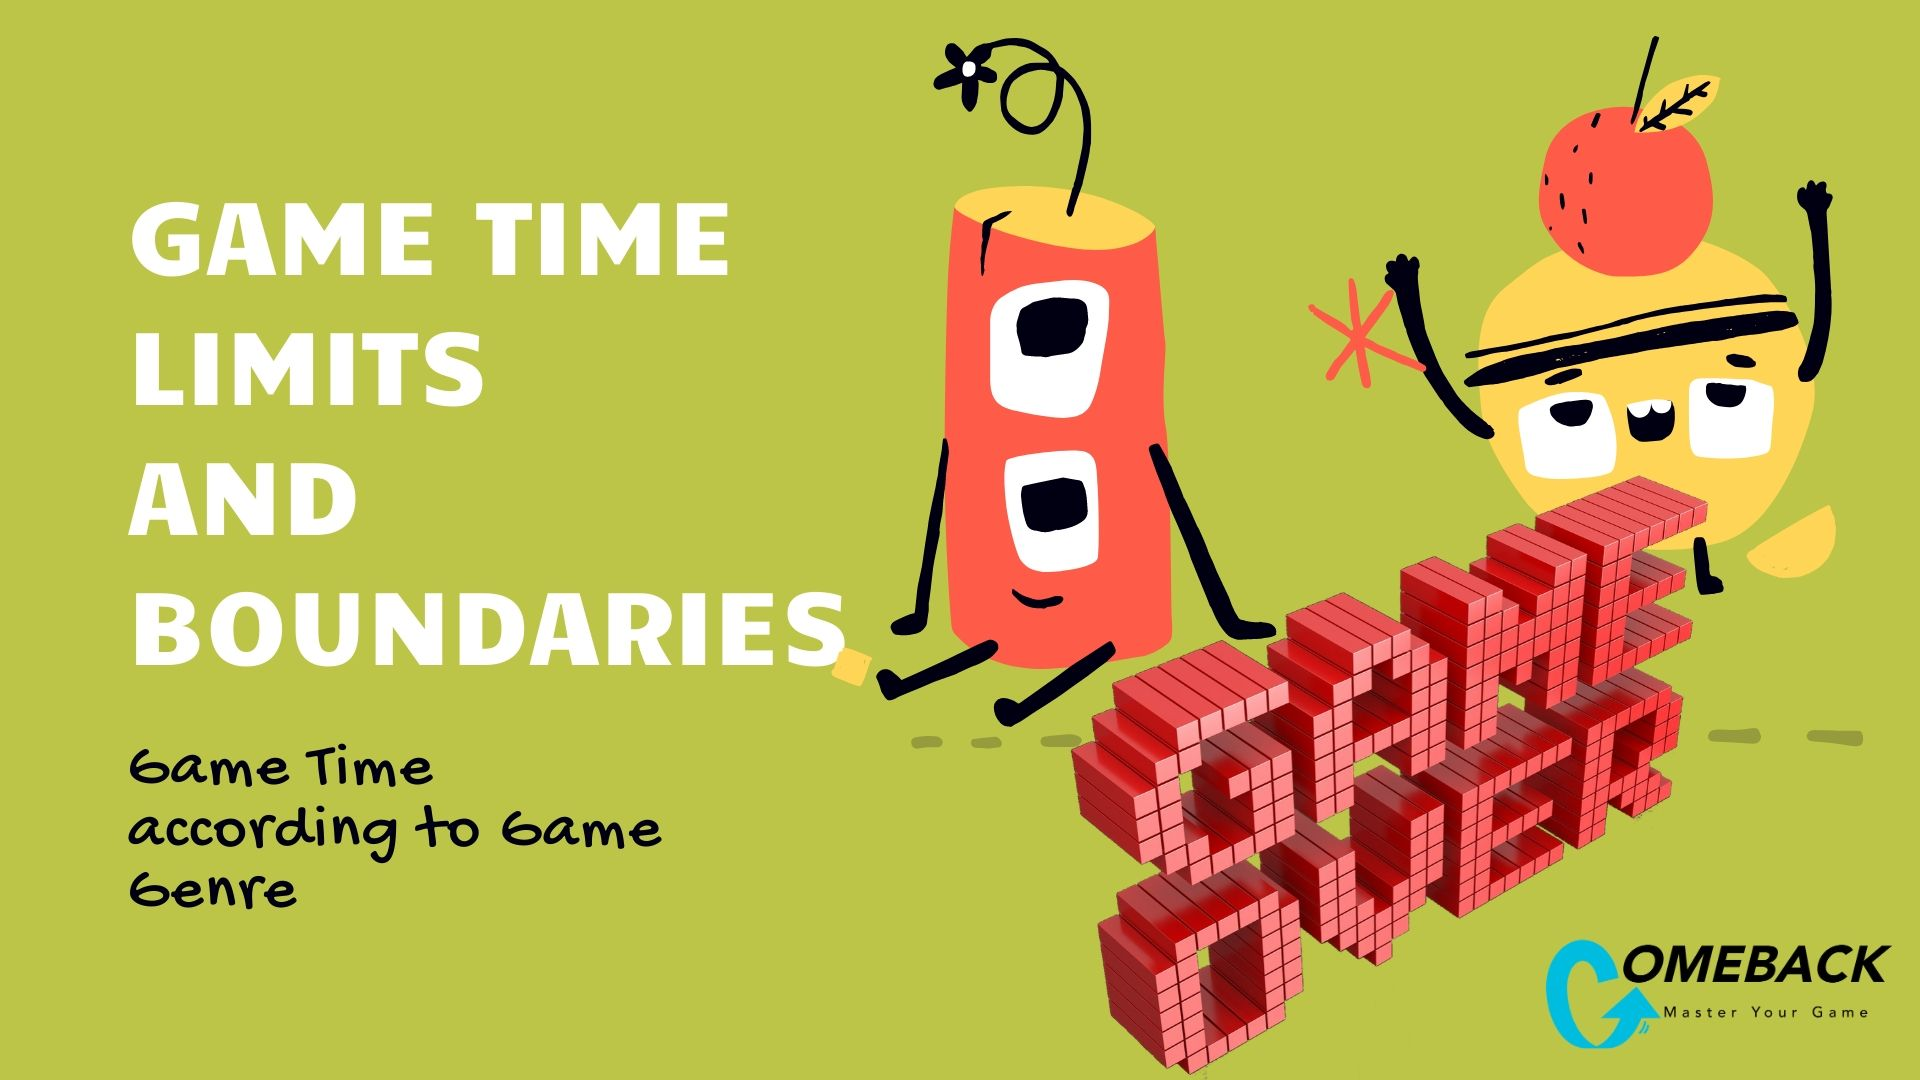 Game Time Limits and Boundaries